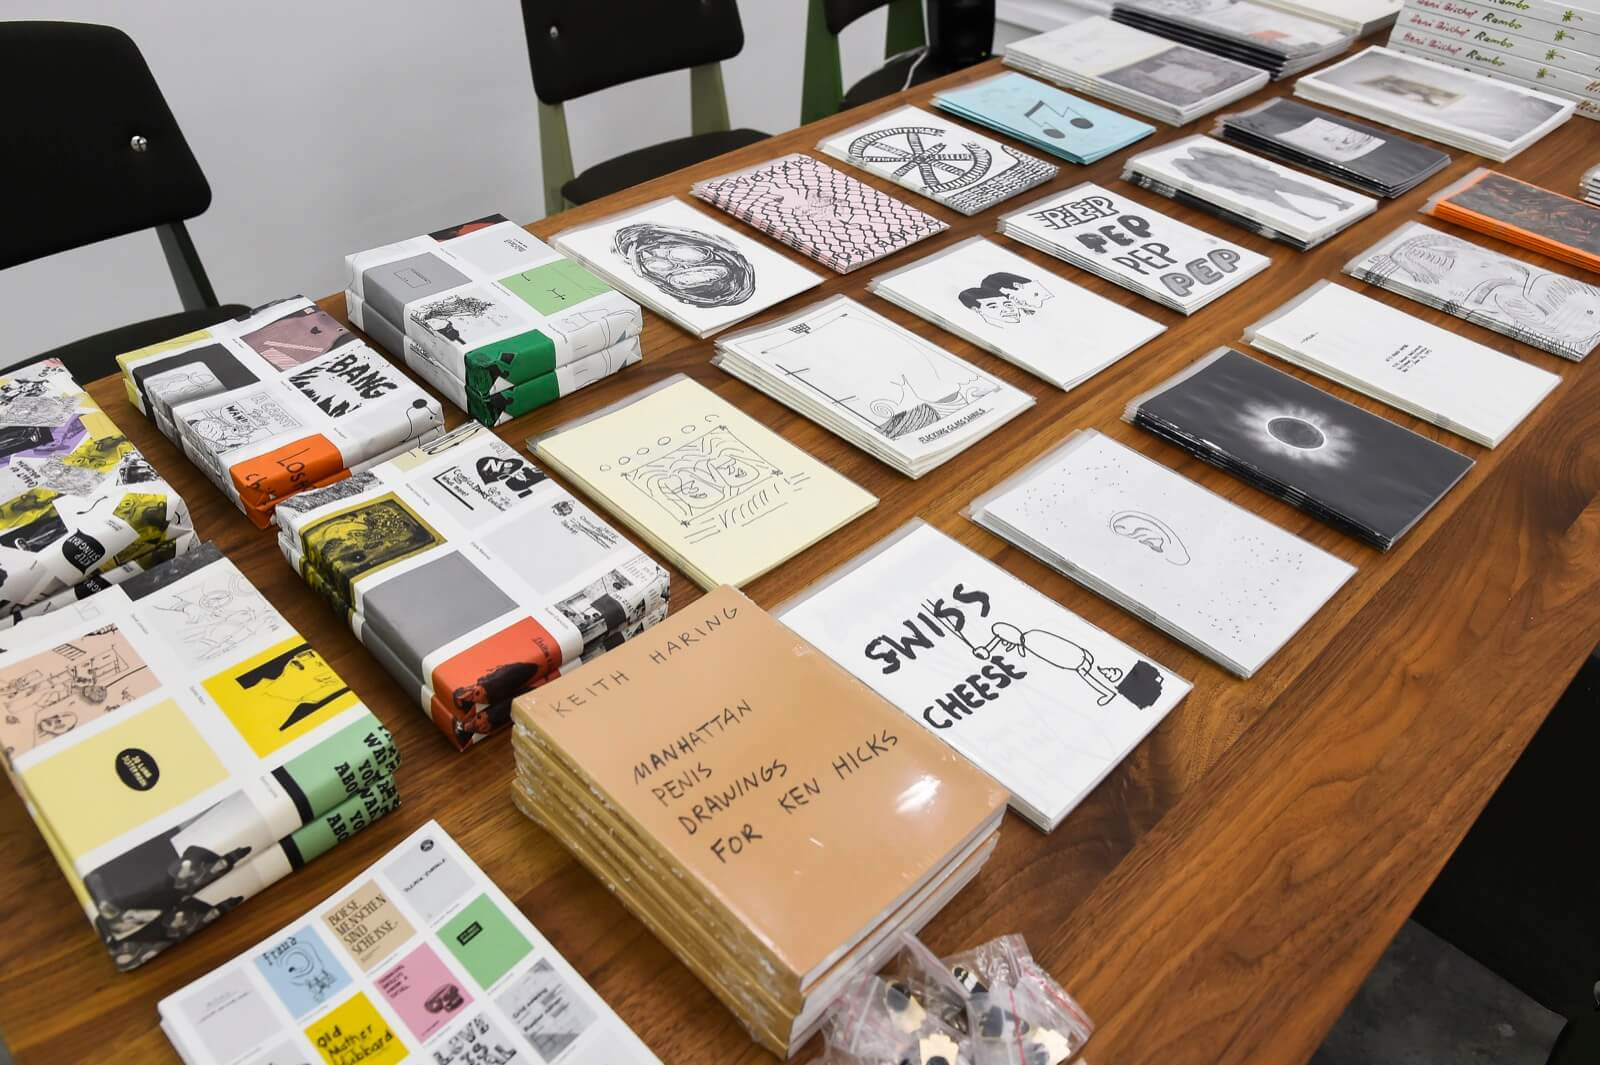 Swiss In Situ | Nieves and Innen Zine Library